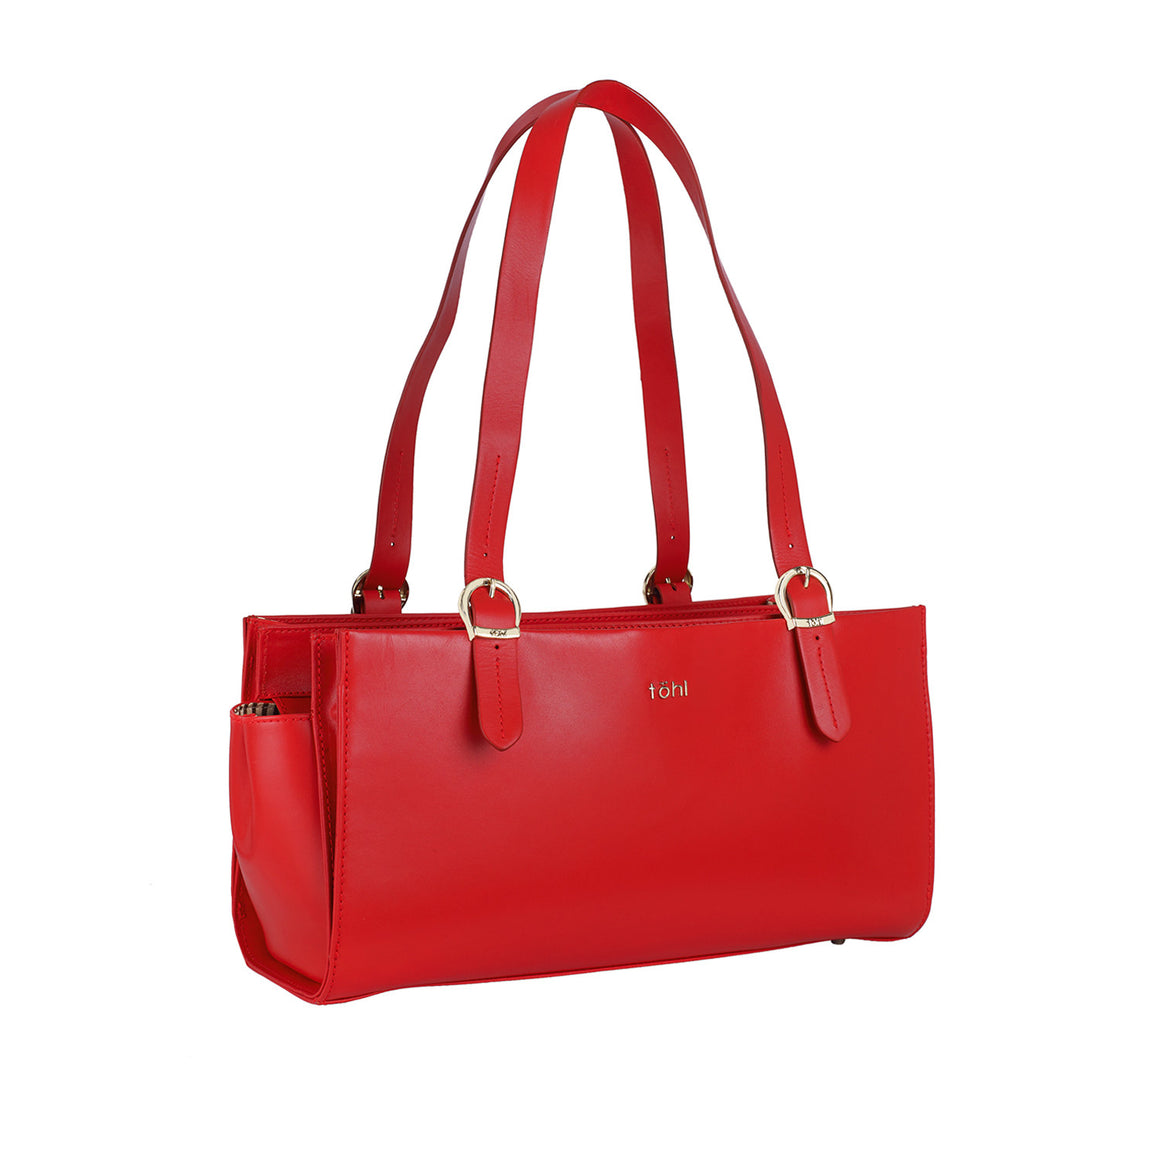 SB 0006 - TOHL CORTLAND WOMEN'S SHOULDER BAGUETTE - SPICE RED